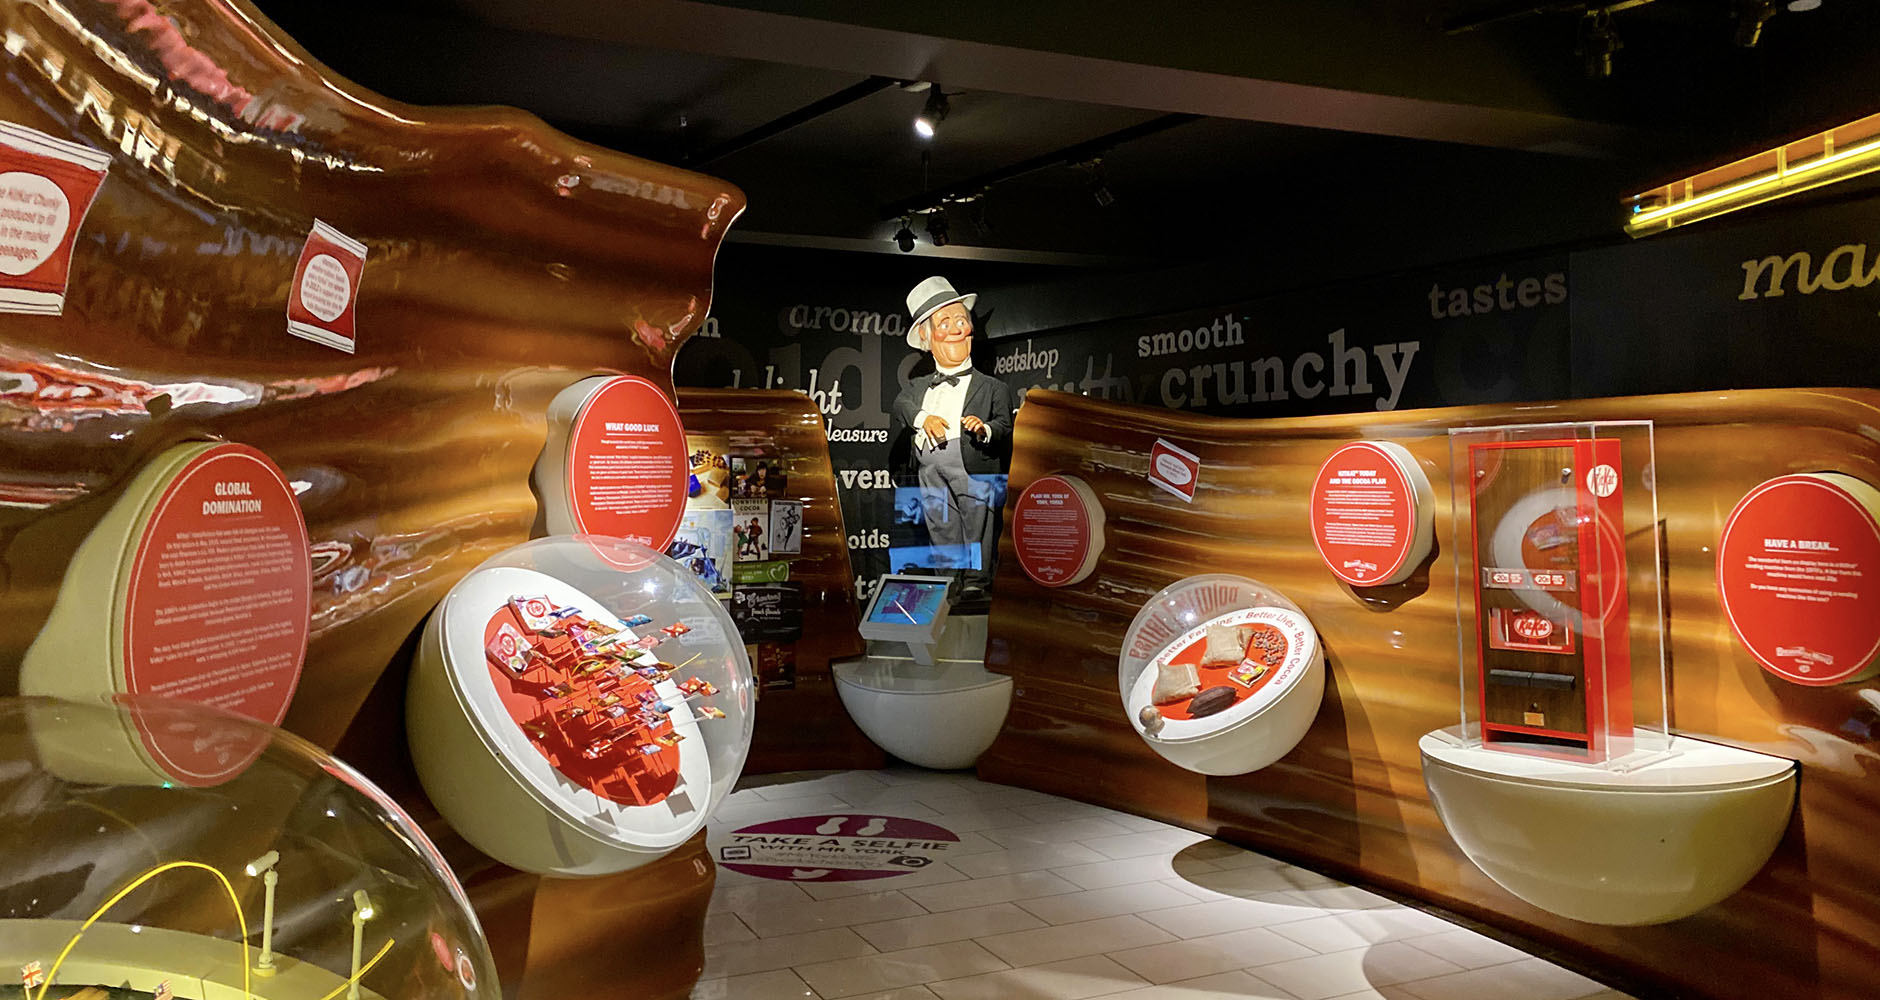 The KitKat exhibition at York's Chocolate Story